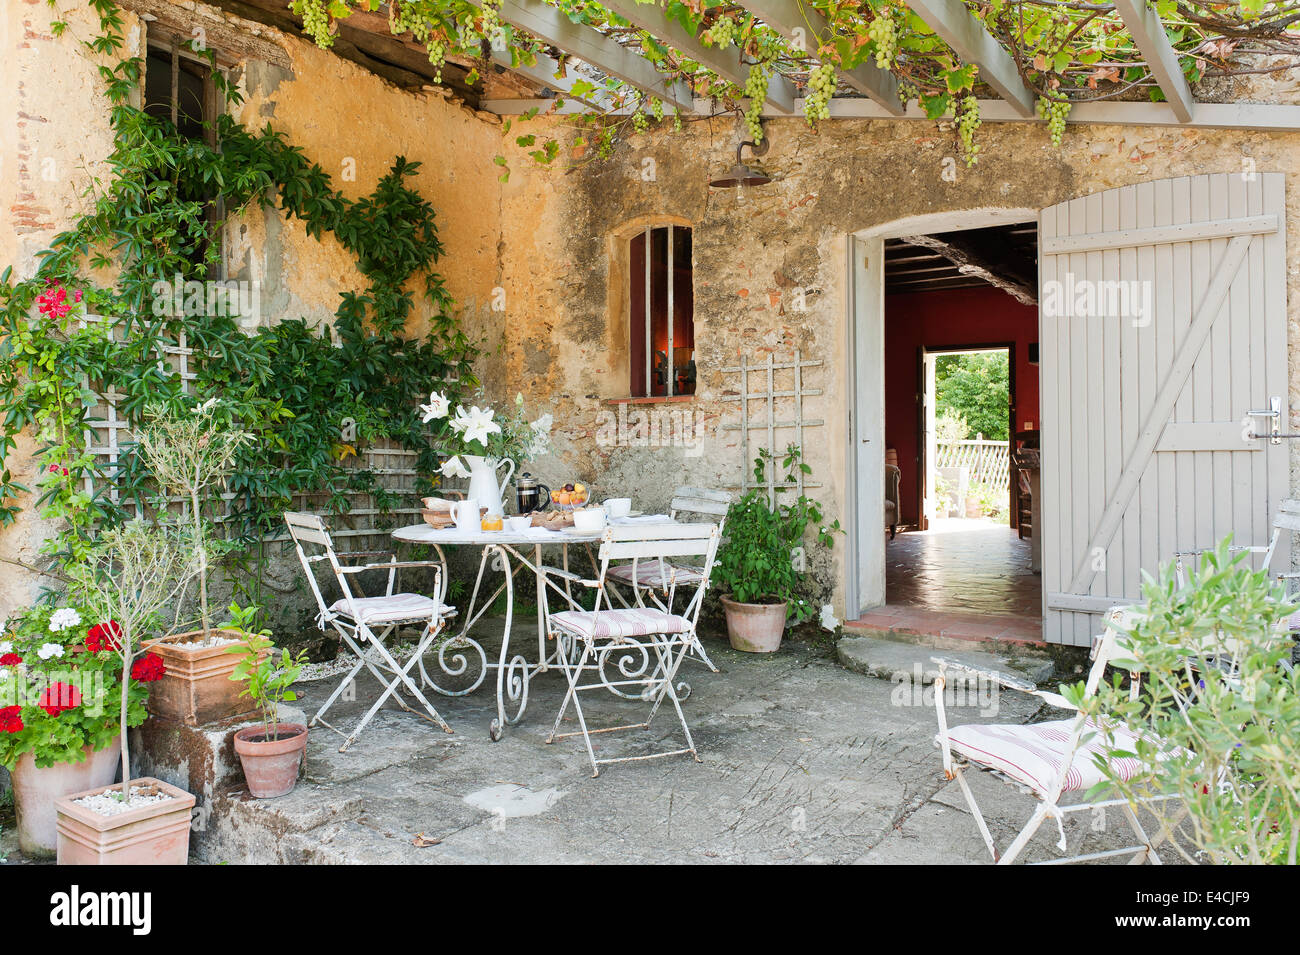 Wrought Iron Table And Folding Bistro Chairs In Courtyard With Overhead  Trellis And Grapevine